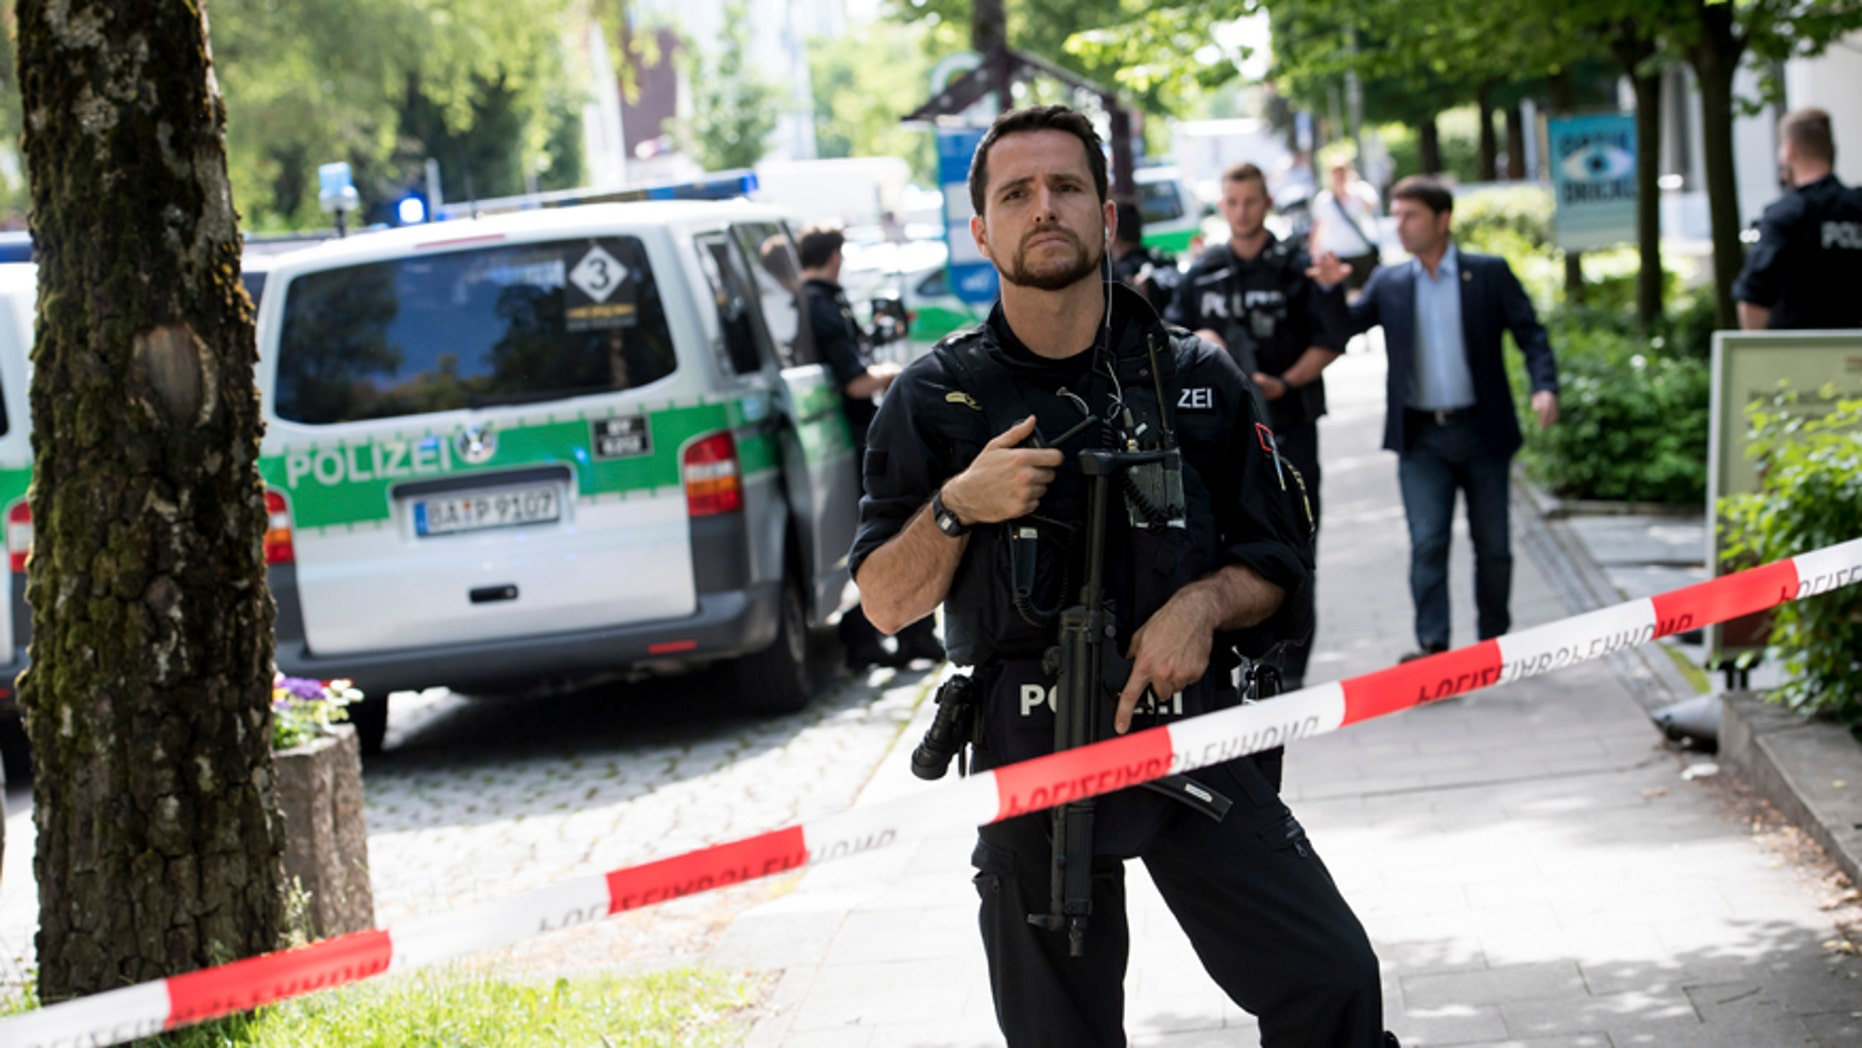 Police block a street near a subway station in Munich, Germany, Tuesday, June 13, 2017.  Several people were injured, including a police officer, in a shooting early Tuesday at a Munich subway station, police said. Munich police said in a tweet that the policewoman's injuries were serious. The suspect was also injured and is in custody. The shooting occurred during a morning police check at the Unterfoehring subway station, Munich police spokesman Michael Riehlein said. (Sven Hoppe/dpa via AP)